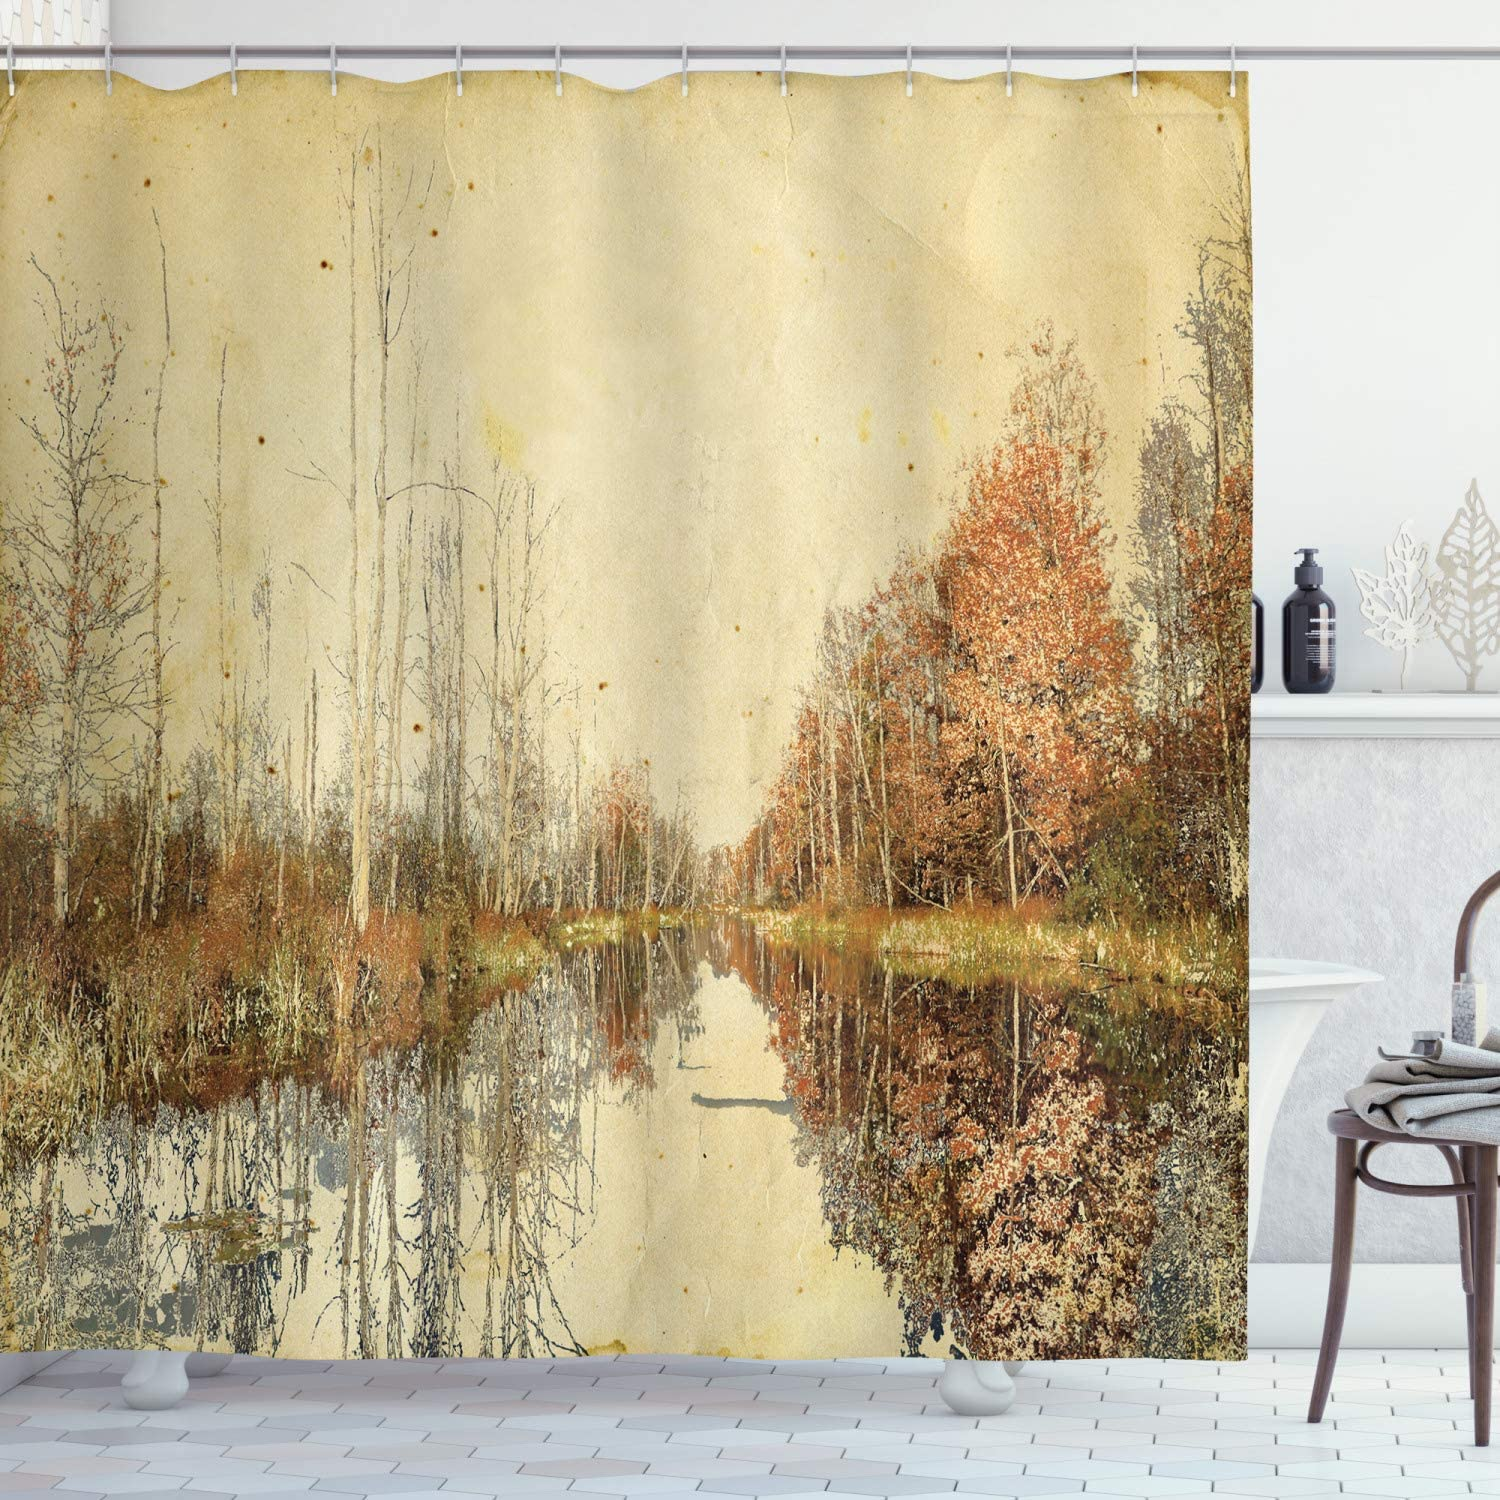 Ambesonne Autumn Shower Curtain, Colorful Fallen Leaves at Fall Season Design Watercolor Style Trees in The Woodland, Cloth Fabric Bathroom Decor Set with Hooks, 70